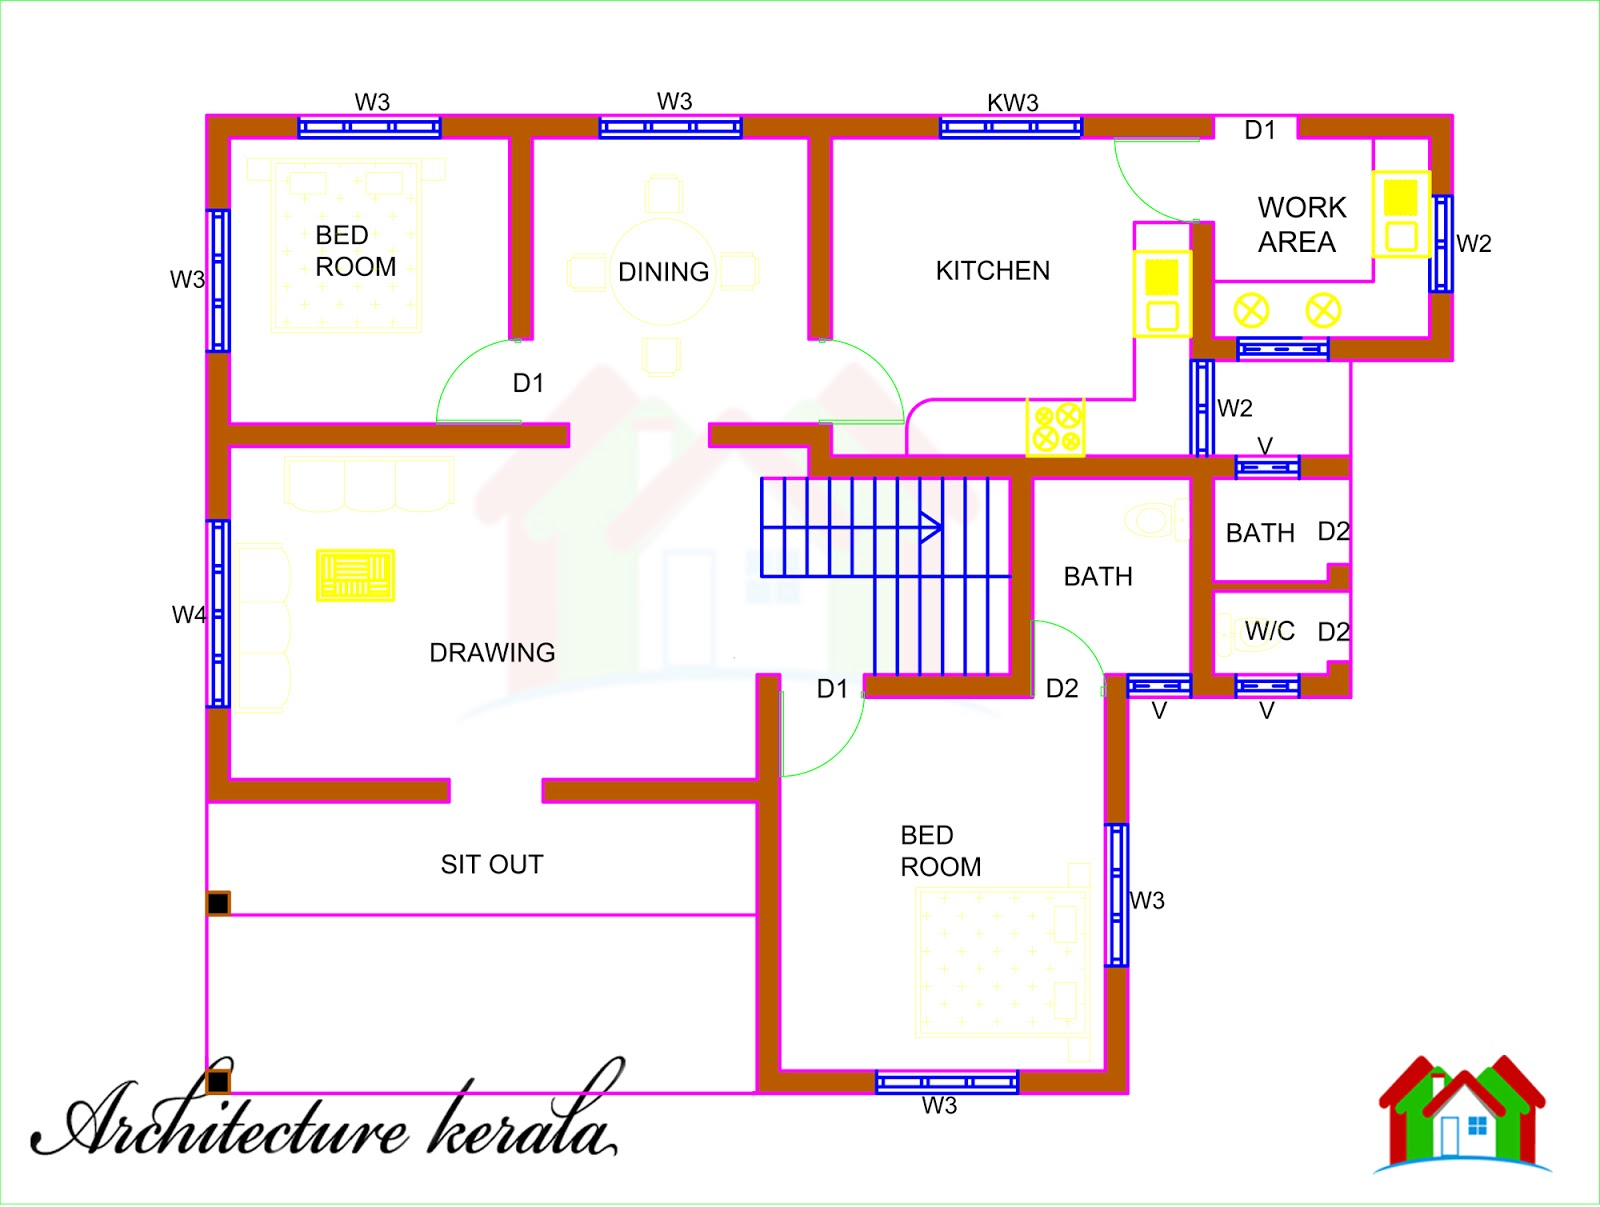 Architecture kerala 5 bedroom house plan and its for 4 bedroom kerala house plans and elevations